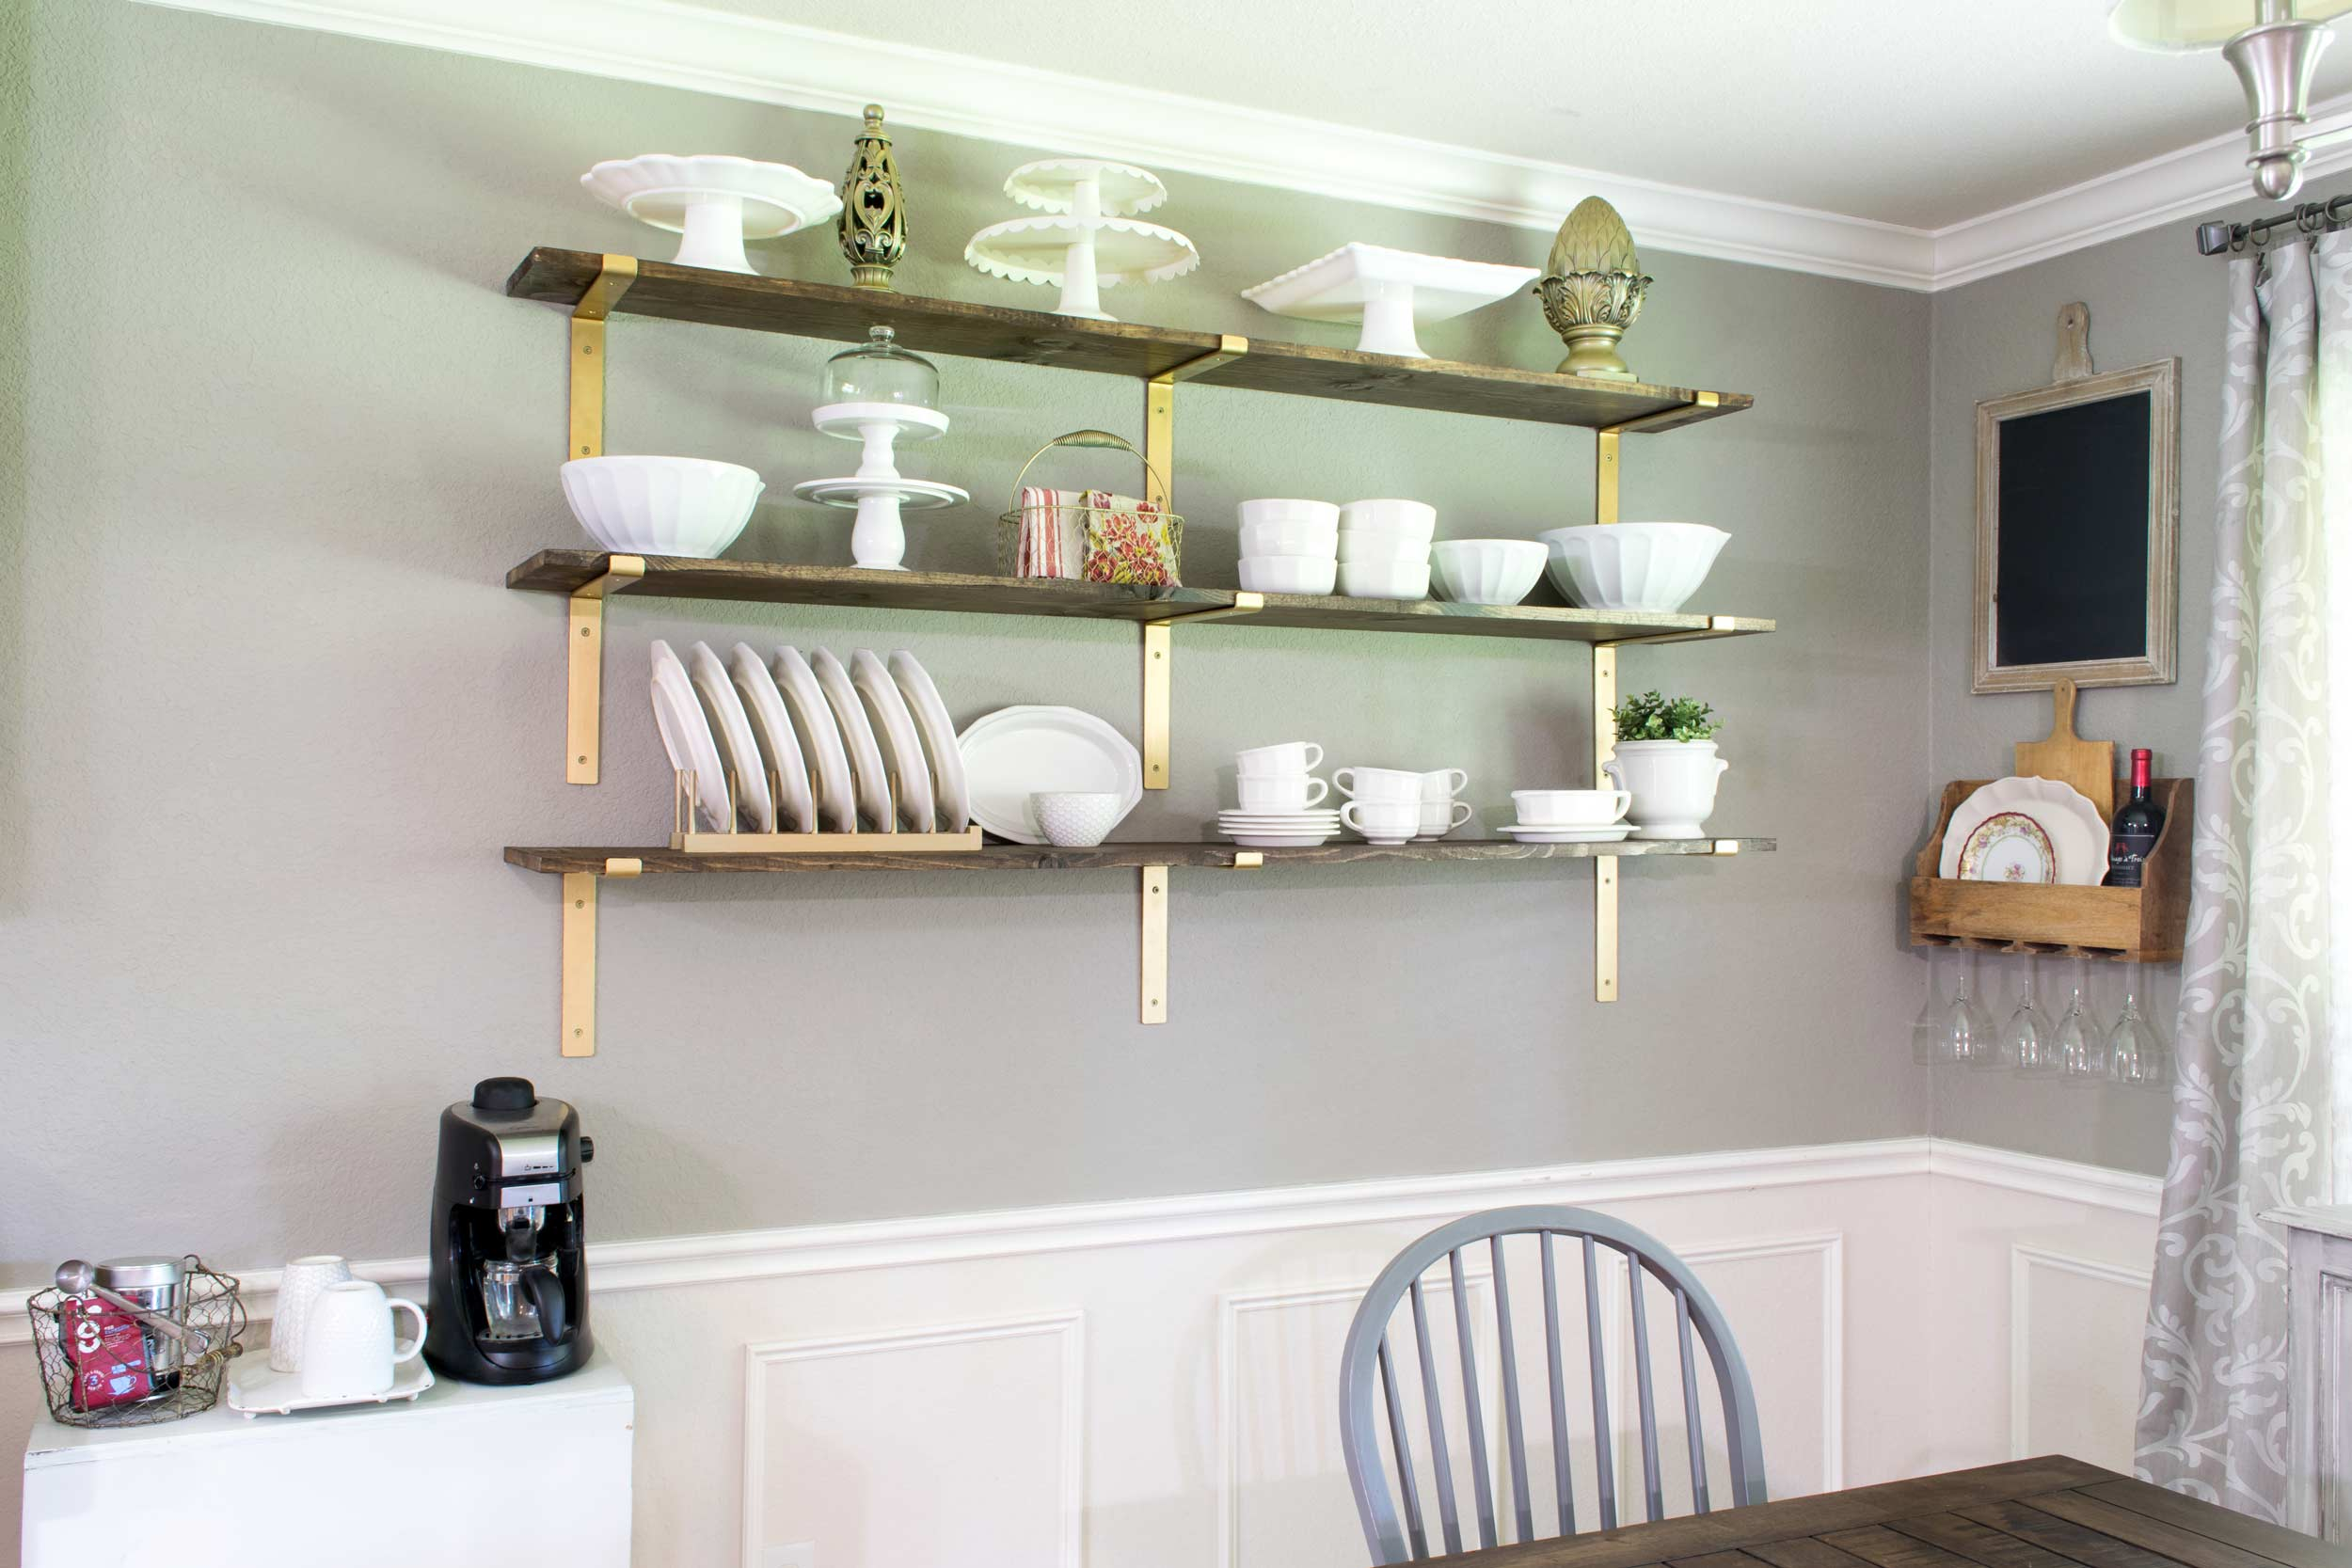 Dining room shelves add more room to display dishes.